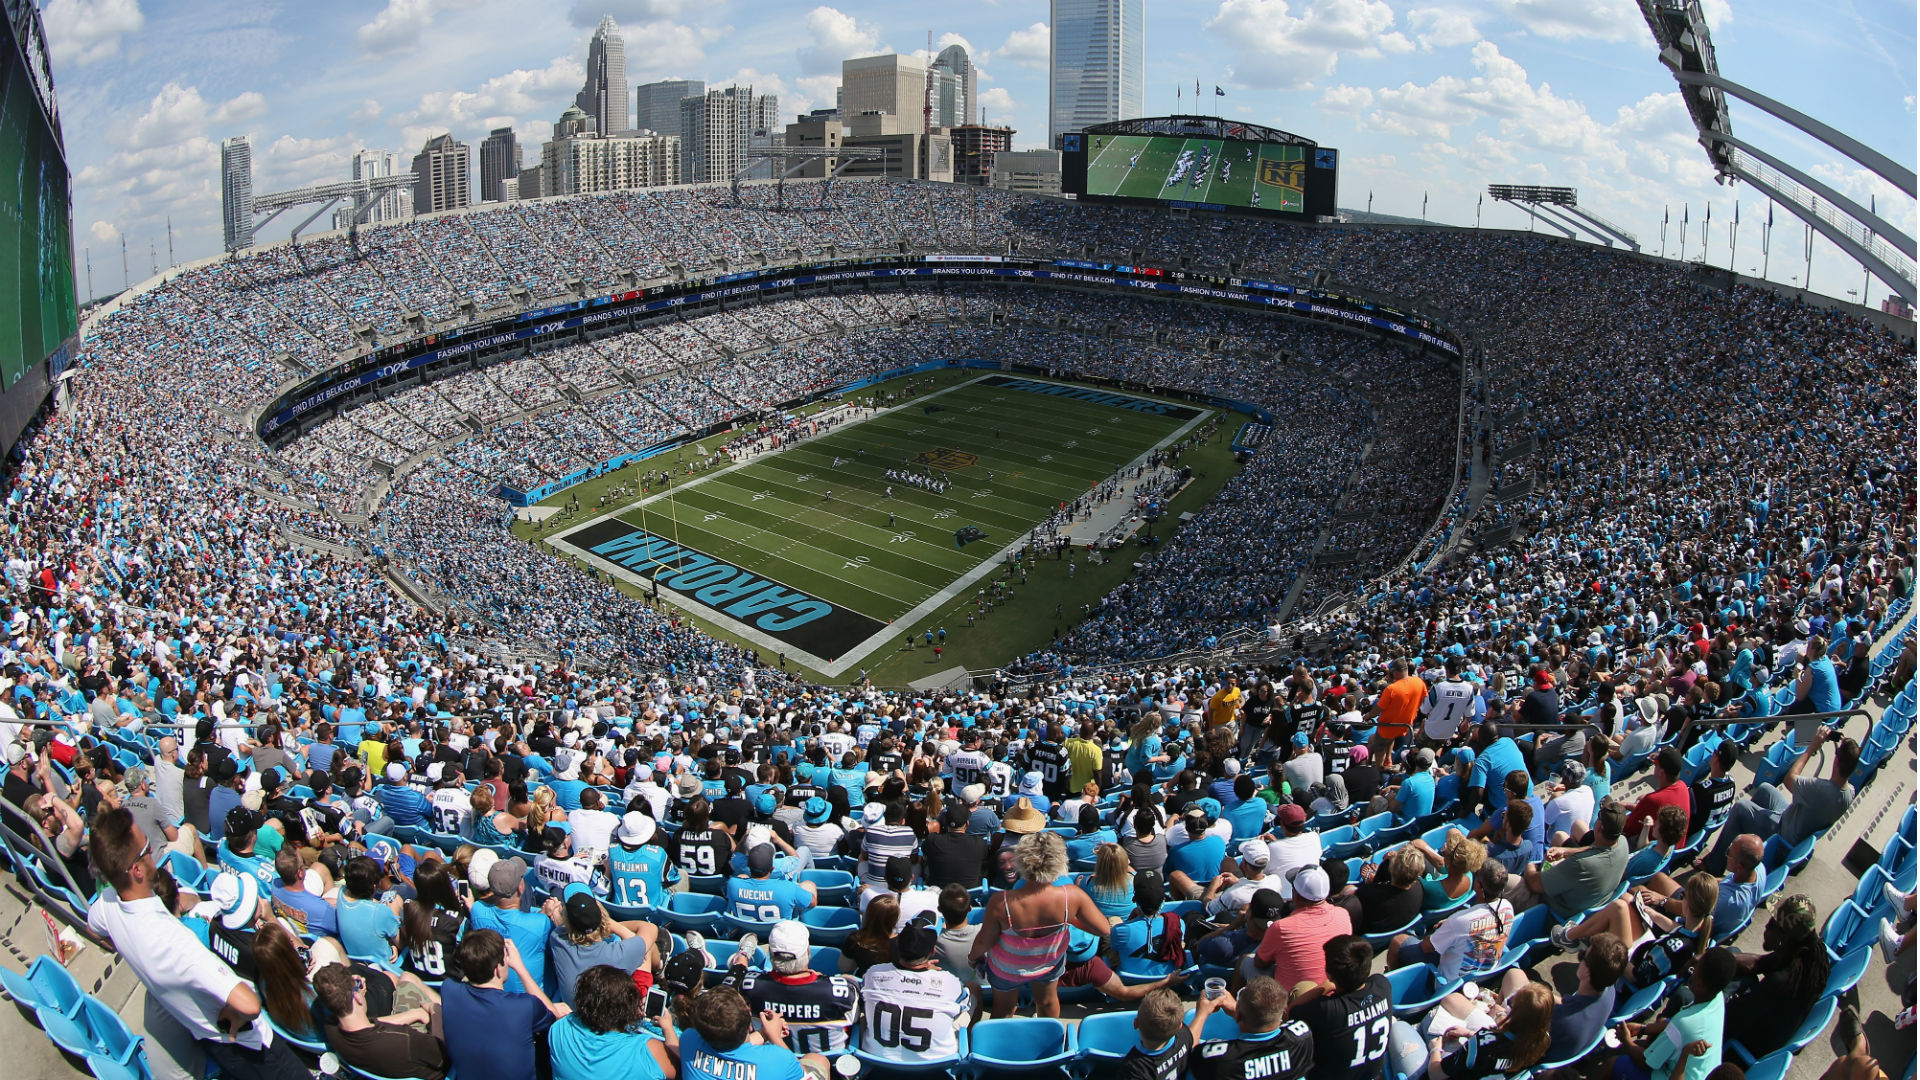 Panthers Receive $2.5B Bid To Purchase Franchise